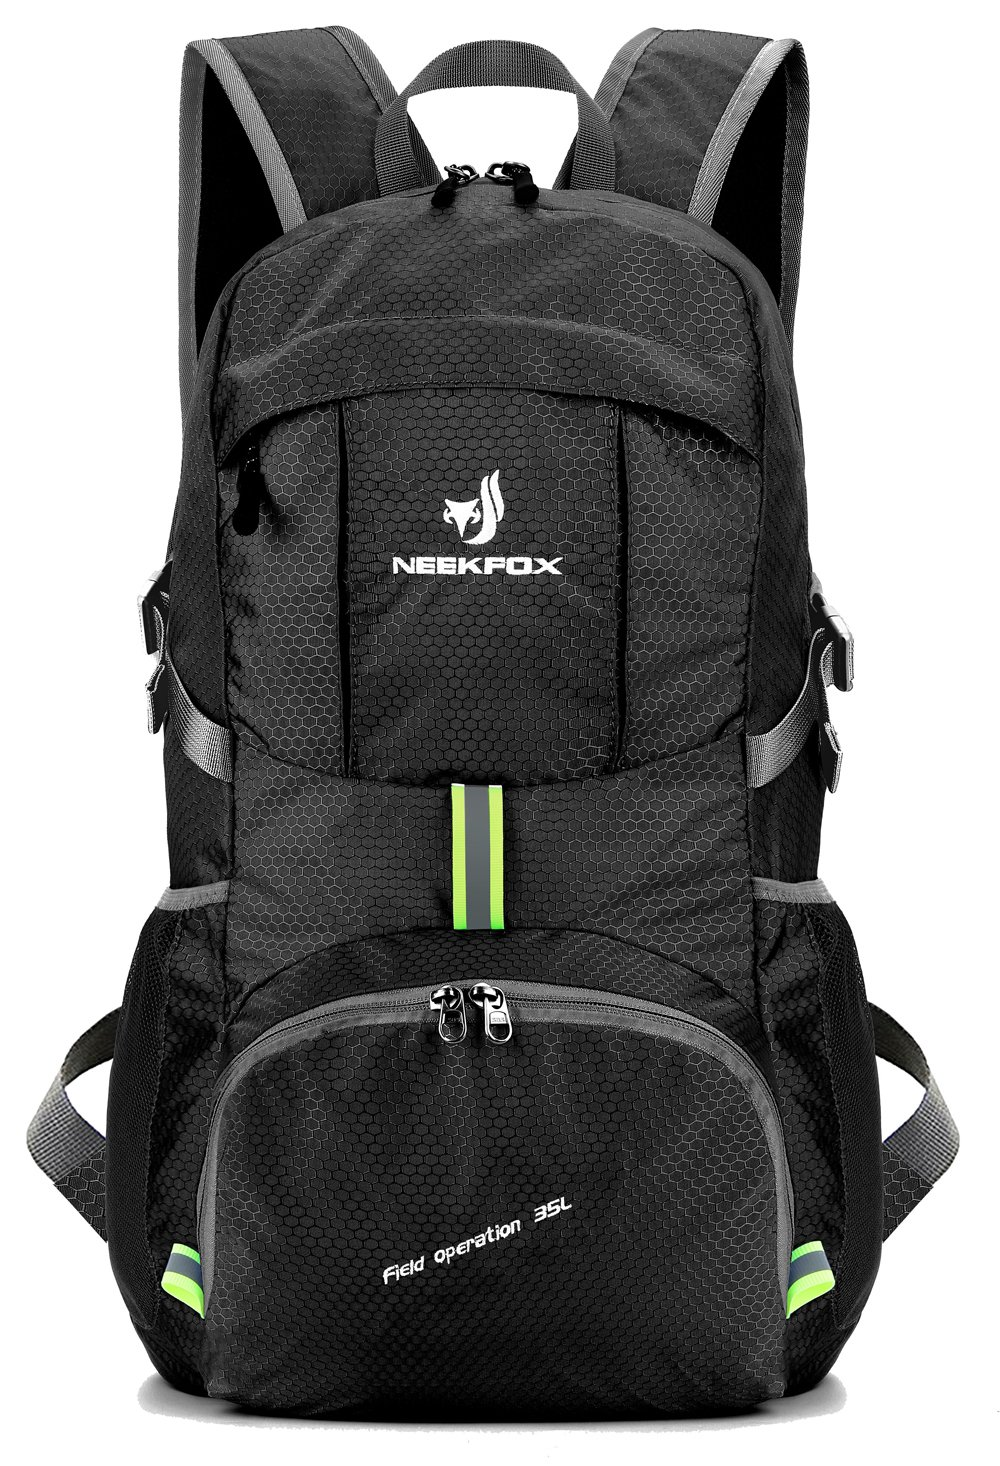 87df8f085685 Amazon.com   NEEKFOX Lightweight Packable Travel Hiking Backpack Daypack